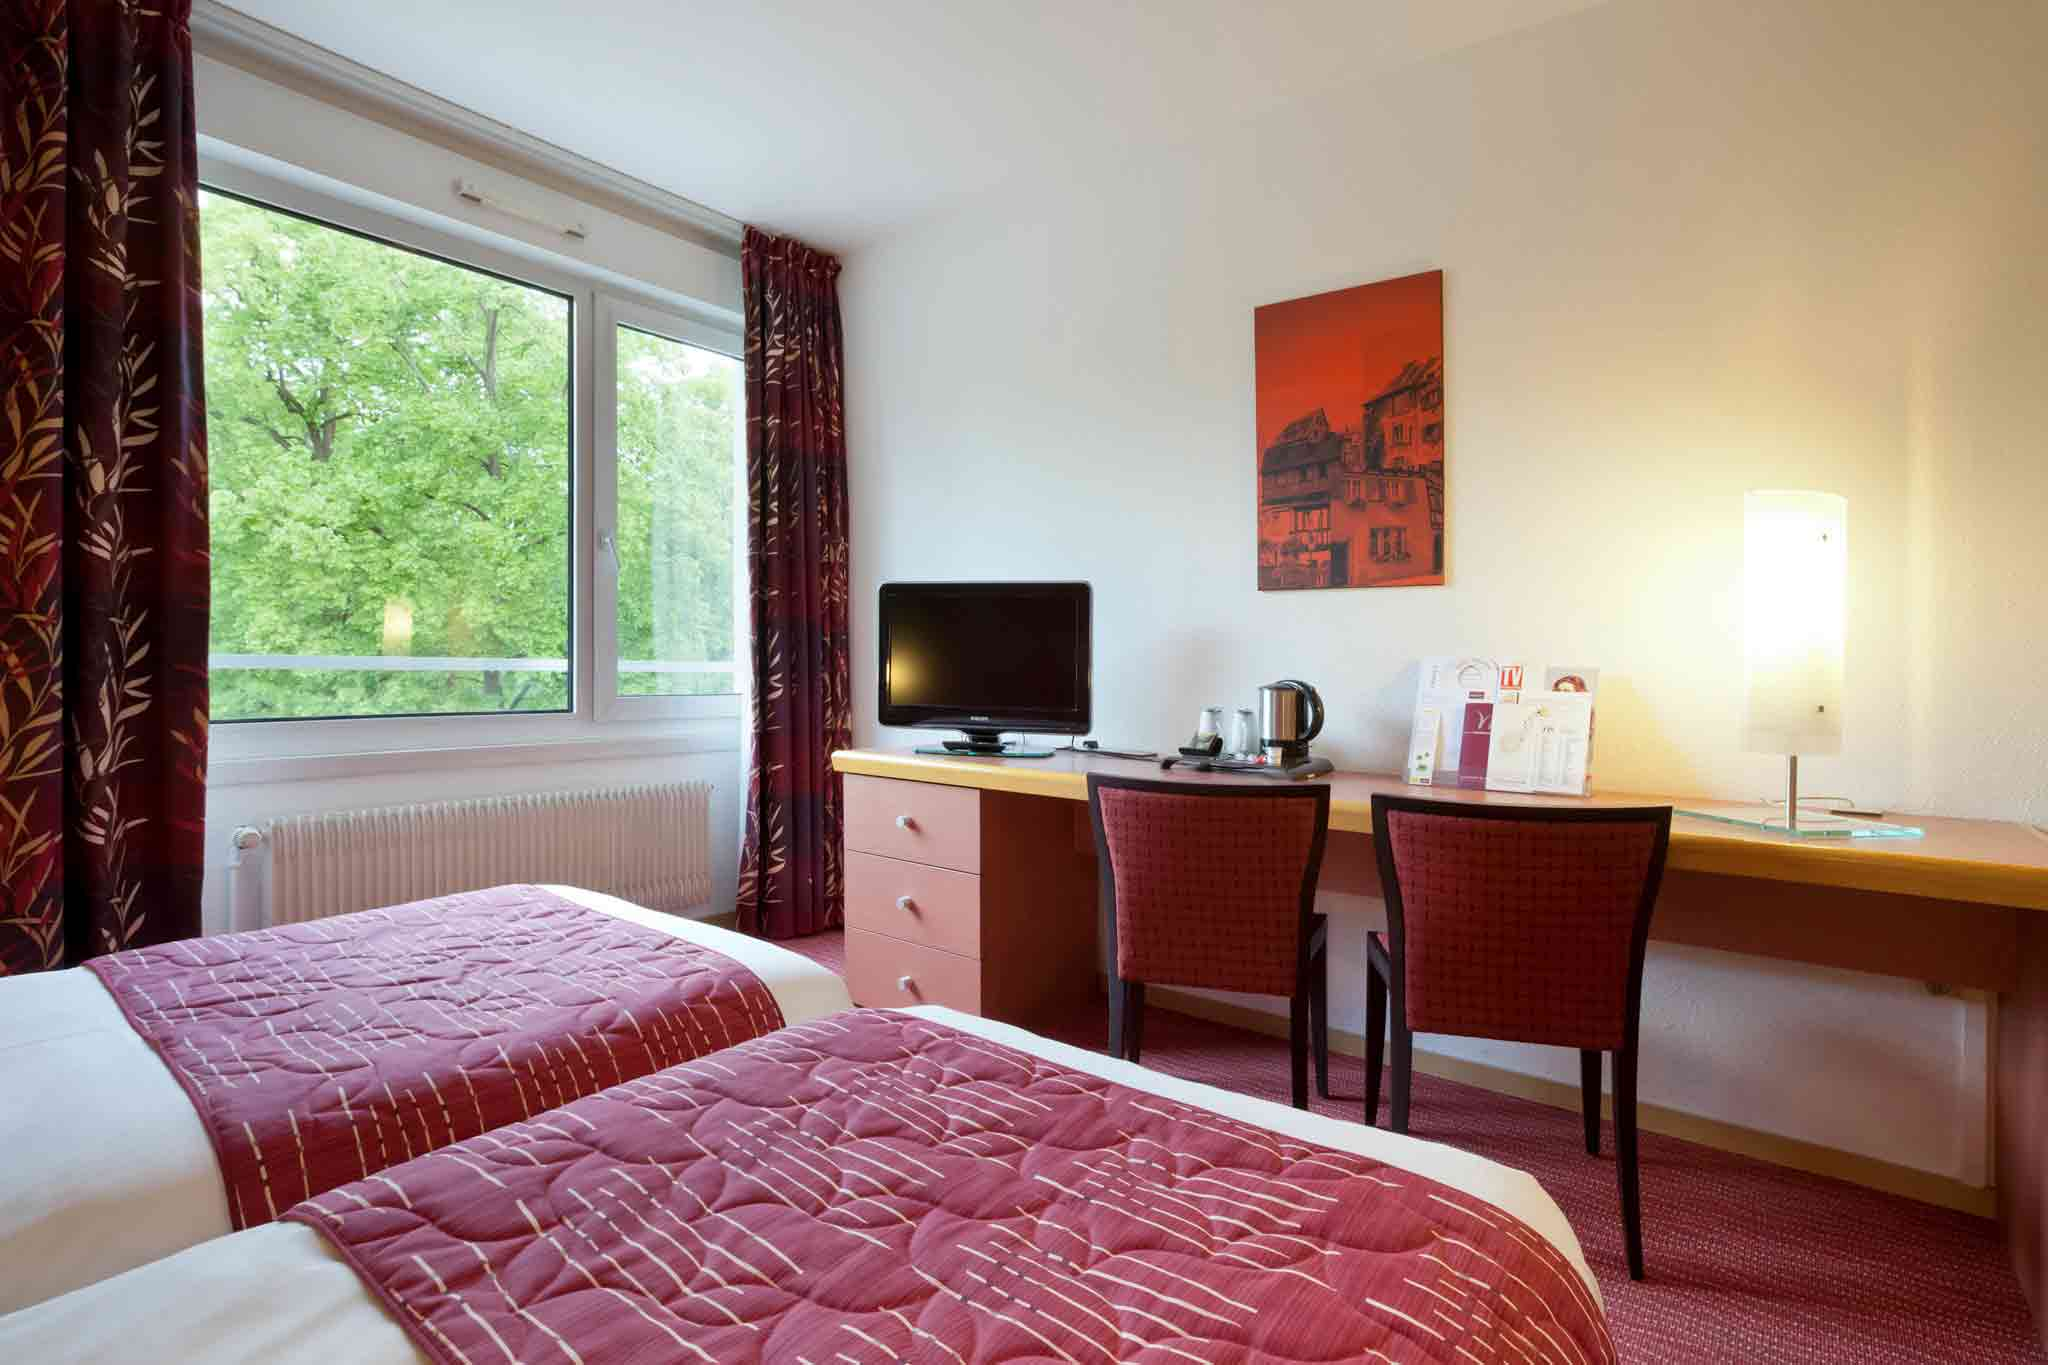 Mercure Colmar Champ Mars View of room